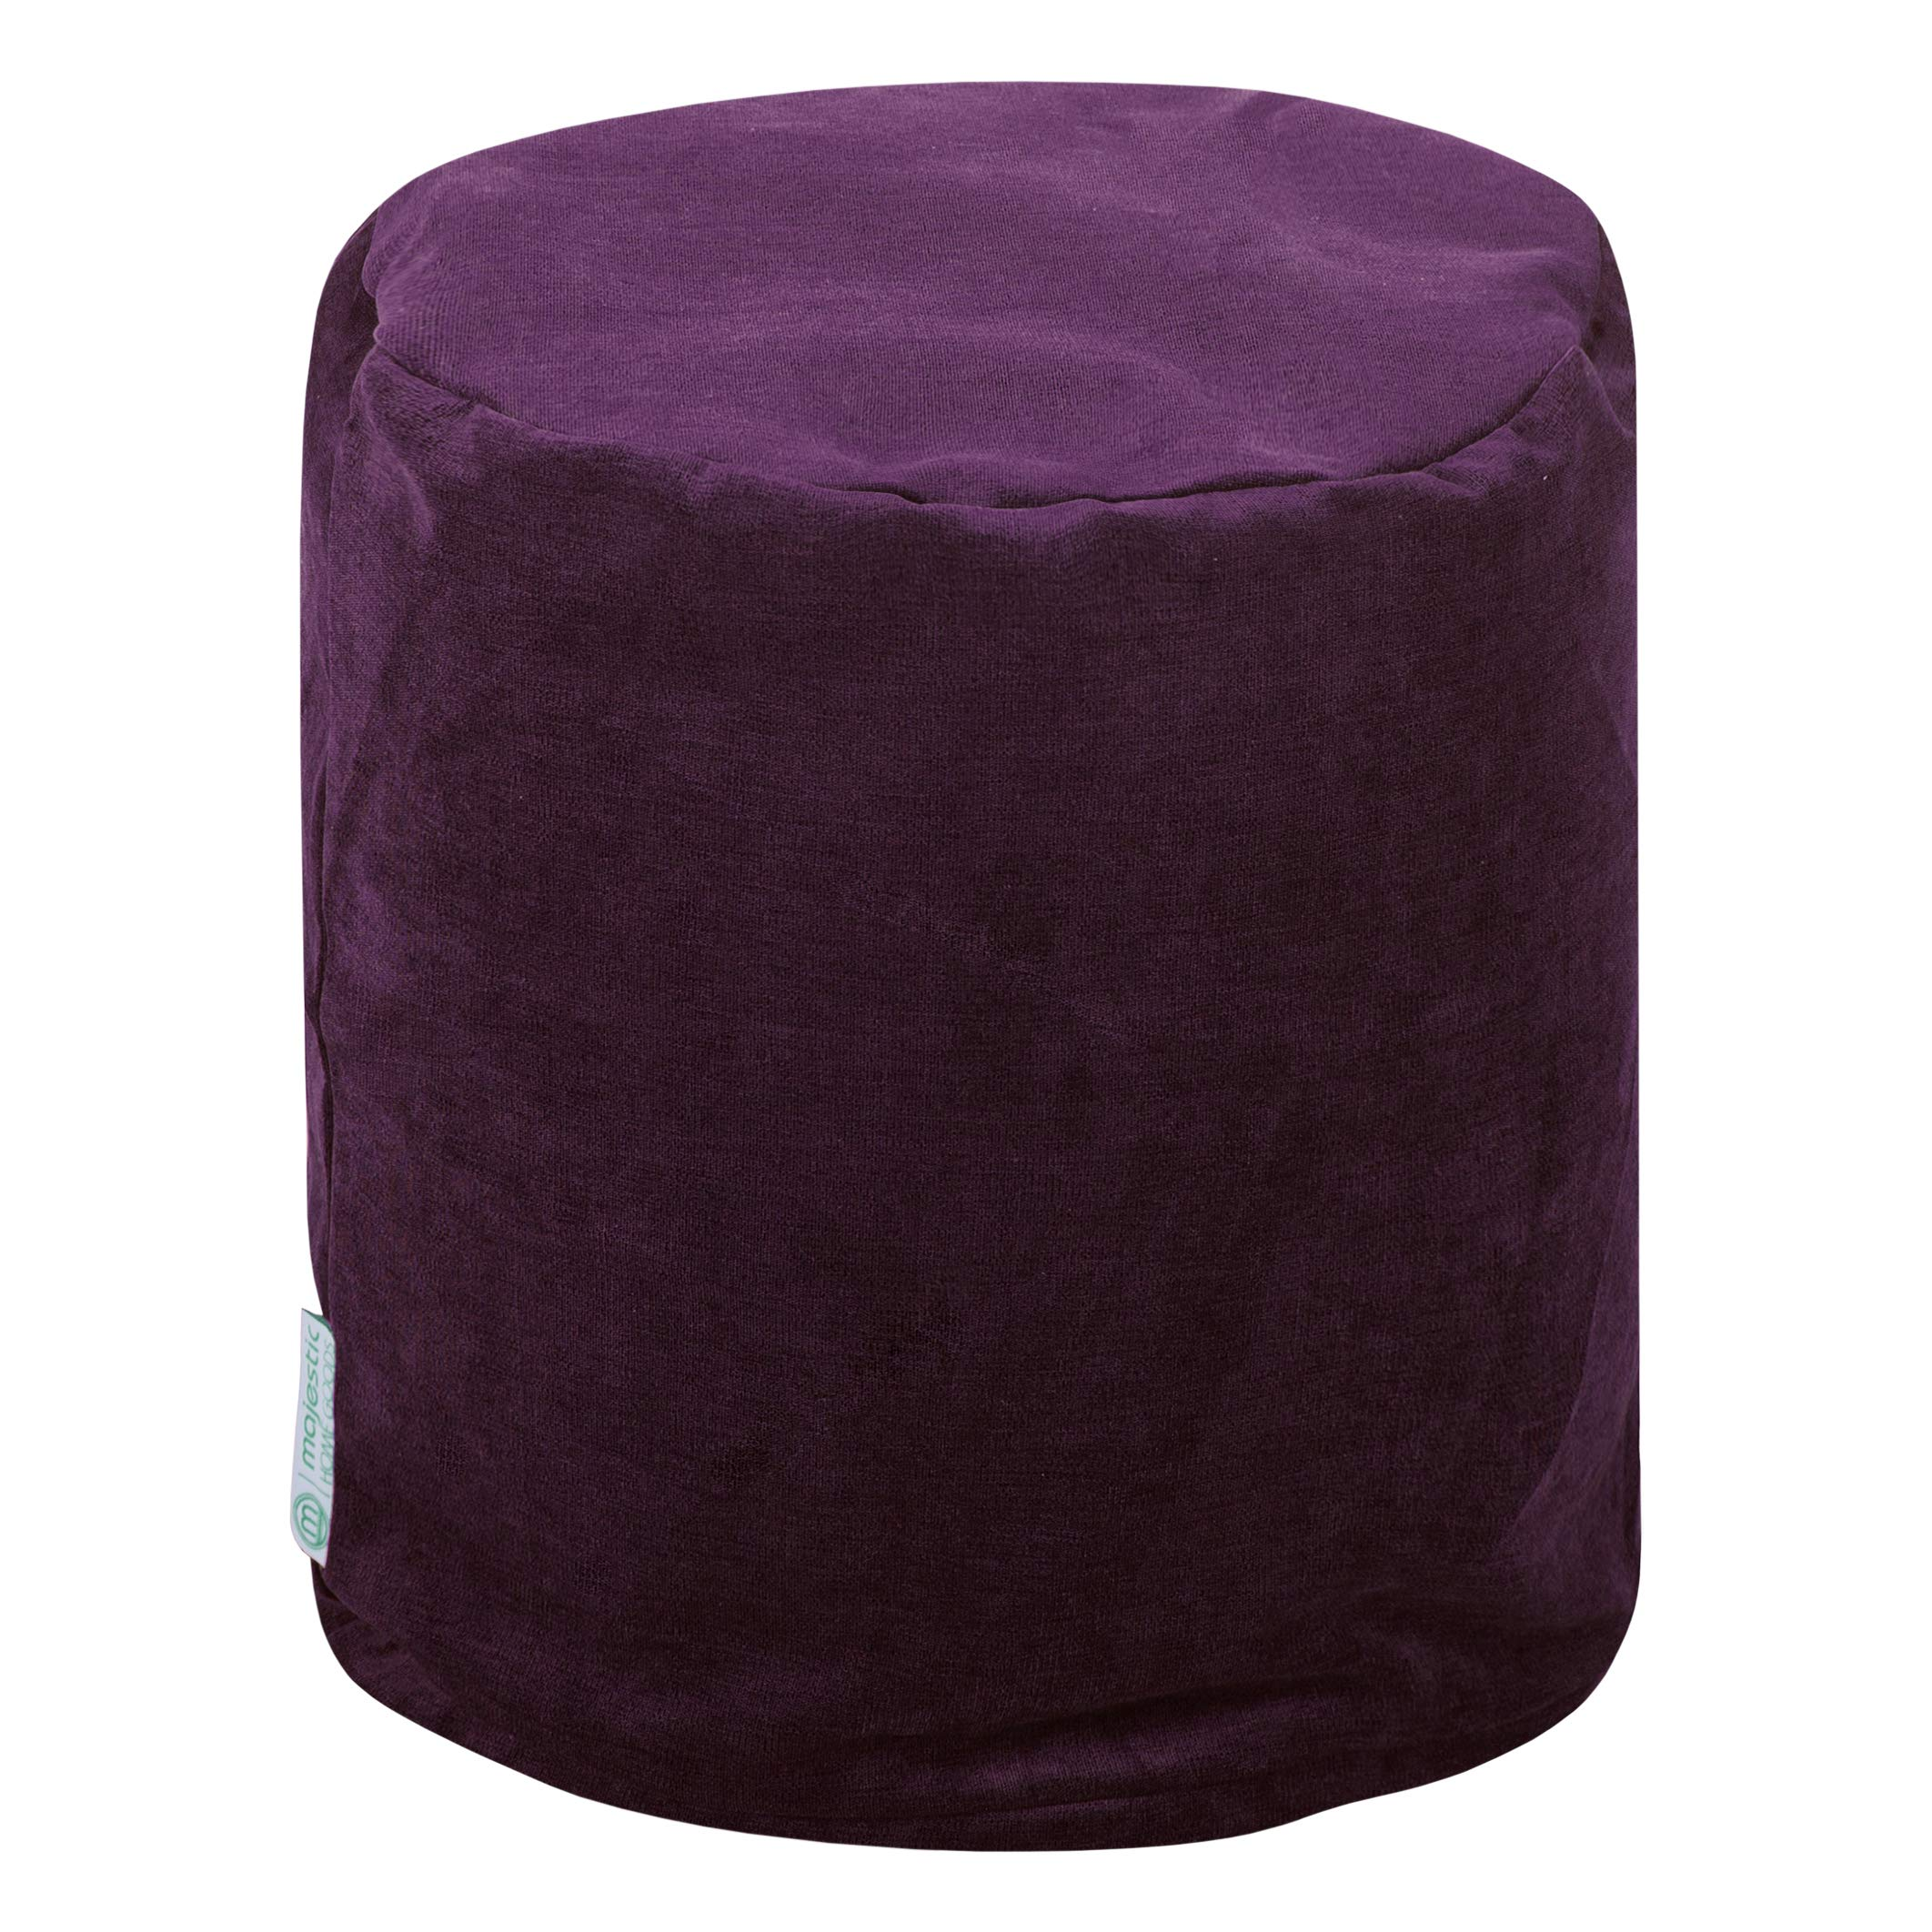 Majestic Home Goods Aubergine Villa Indoor Bean Bag Ottoman Pouf  16'' L x 16'' W x 17'' H